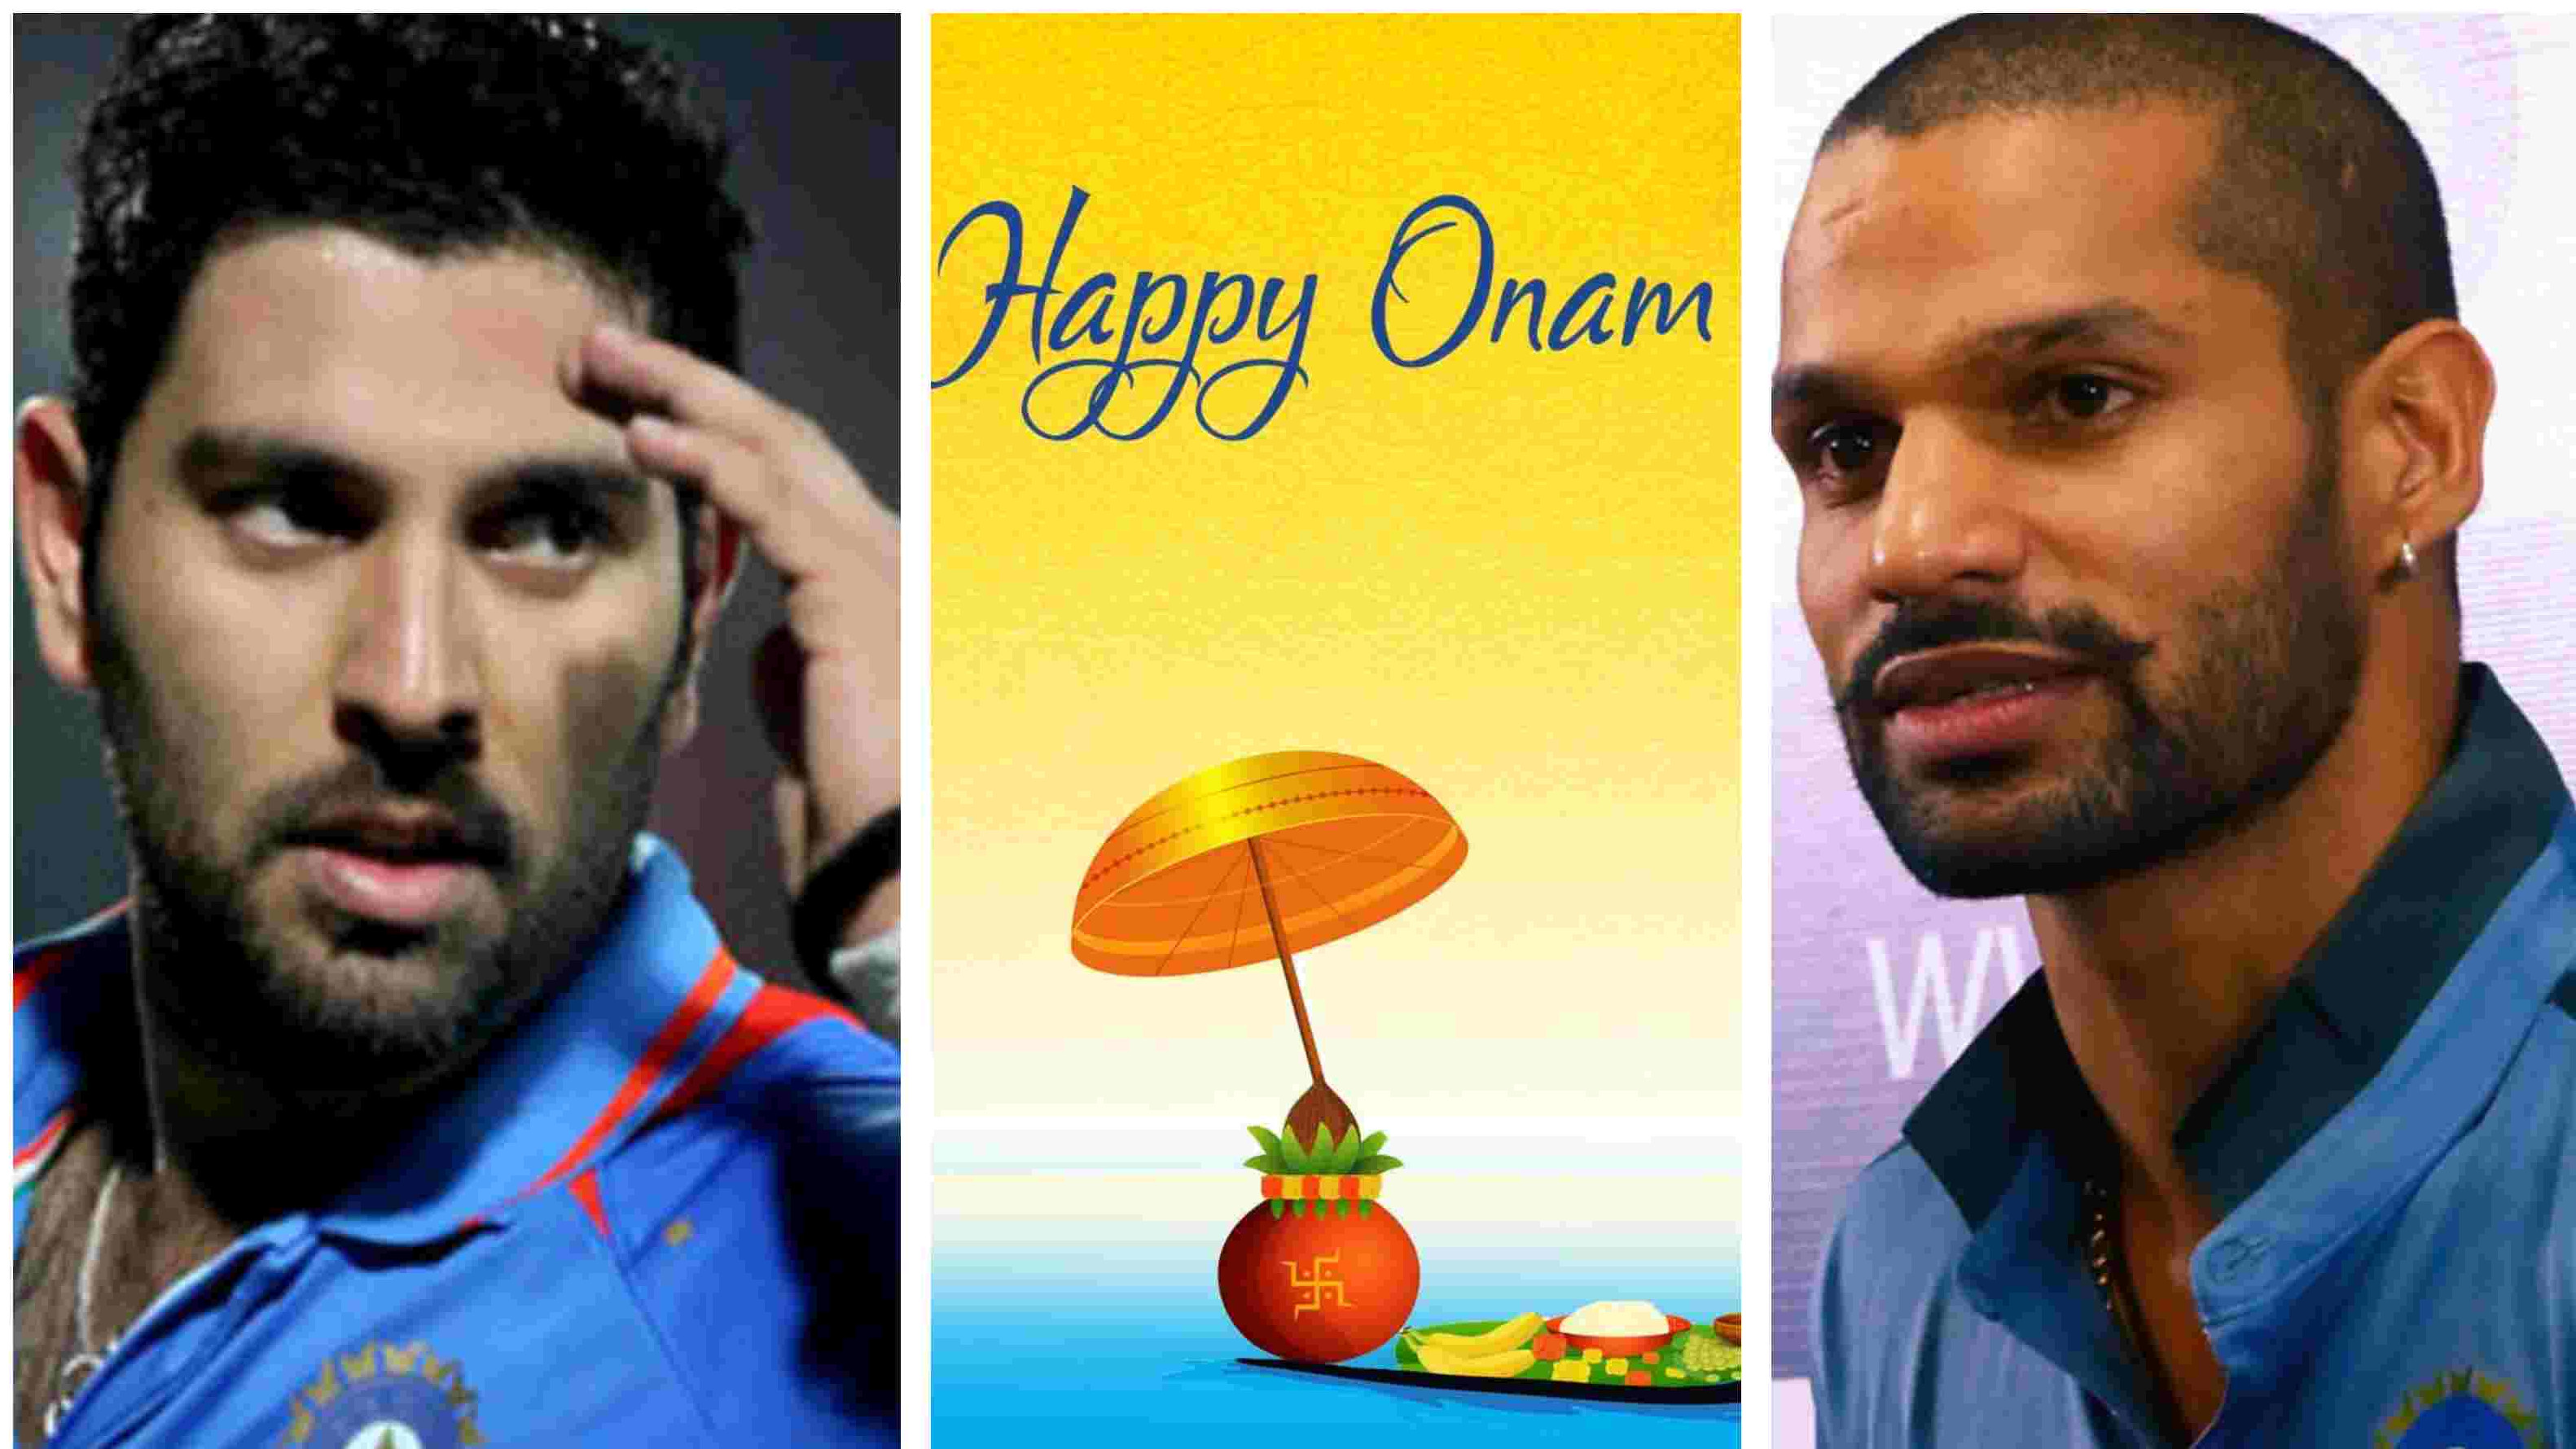 Indian cricket fraternity convey their wishes on Onam as Kerala struggles to stand up after floods